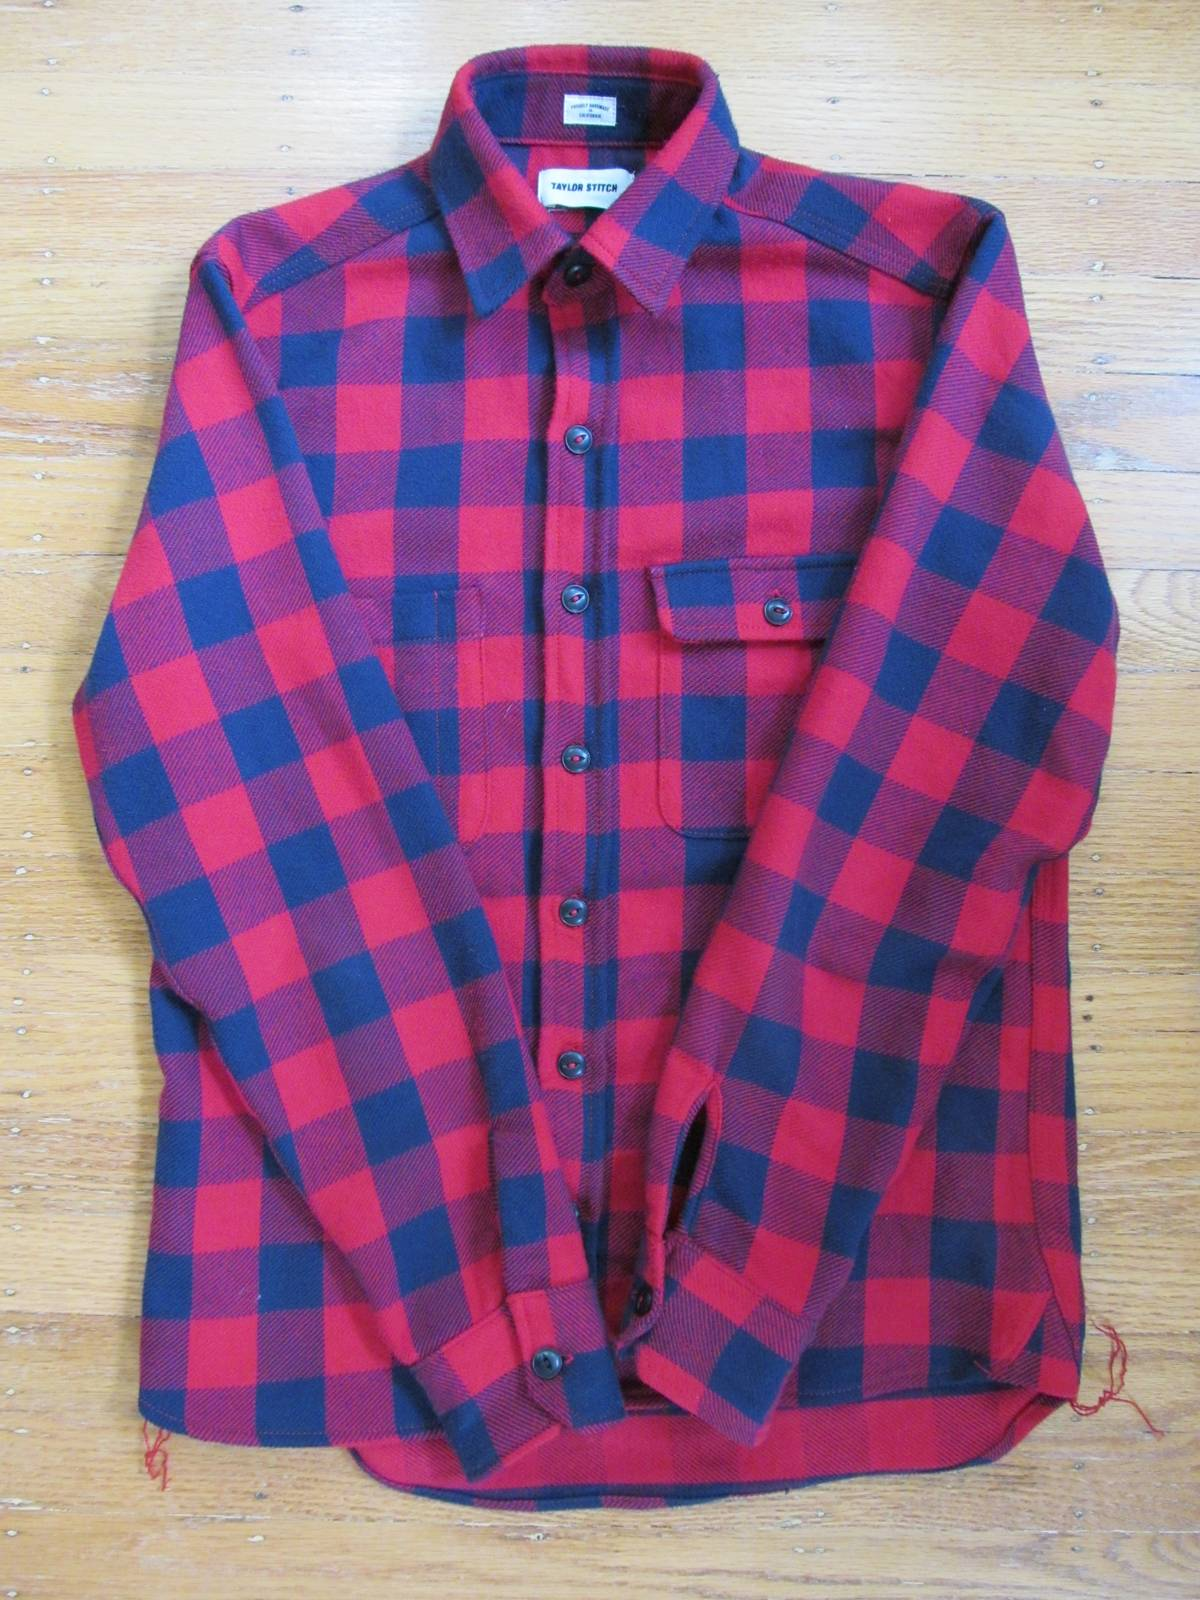 0454860ec759 Taylor Stitch The Moto Utility Shirt Red Buffalo Plaid S Size s - Shirts  (Button Ups) for Sale - Grailed